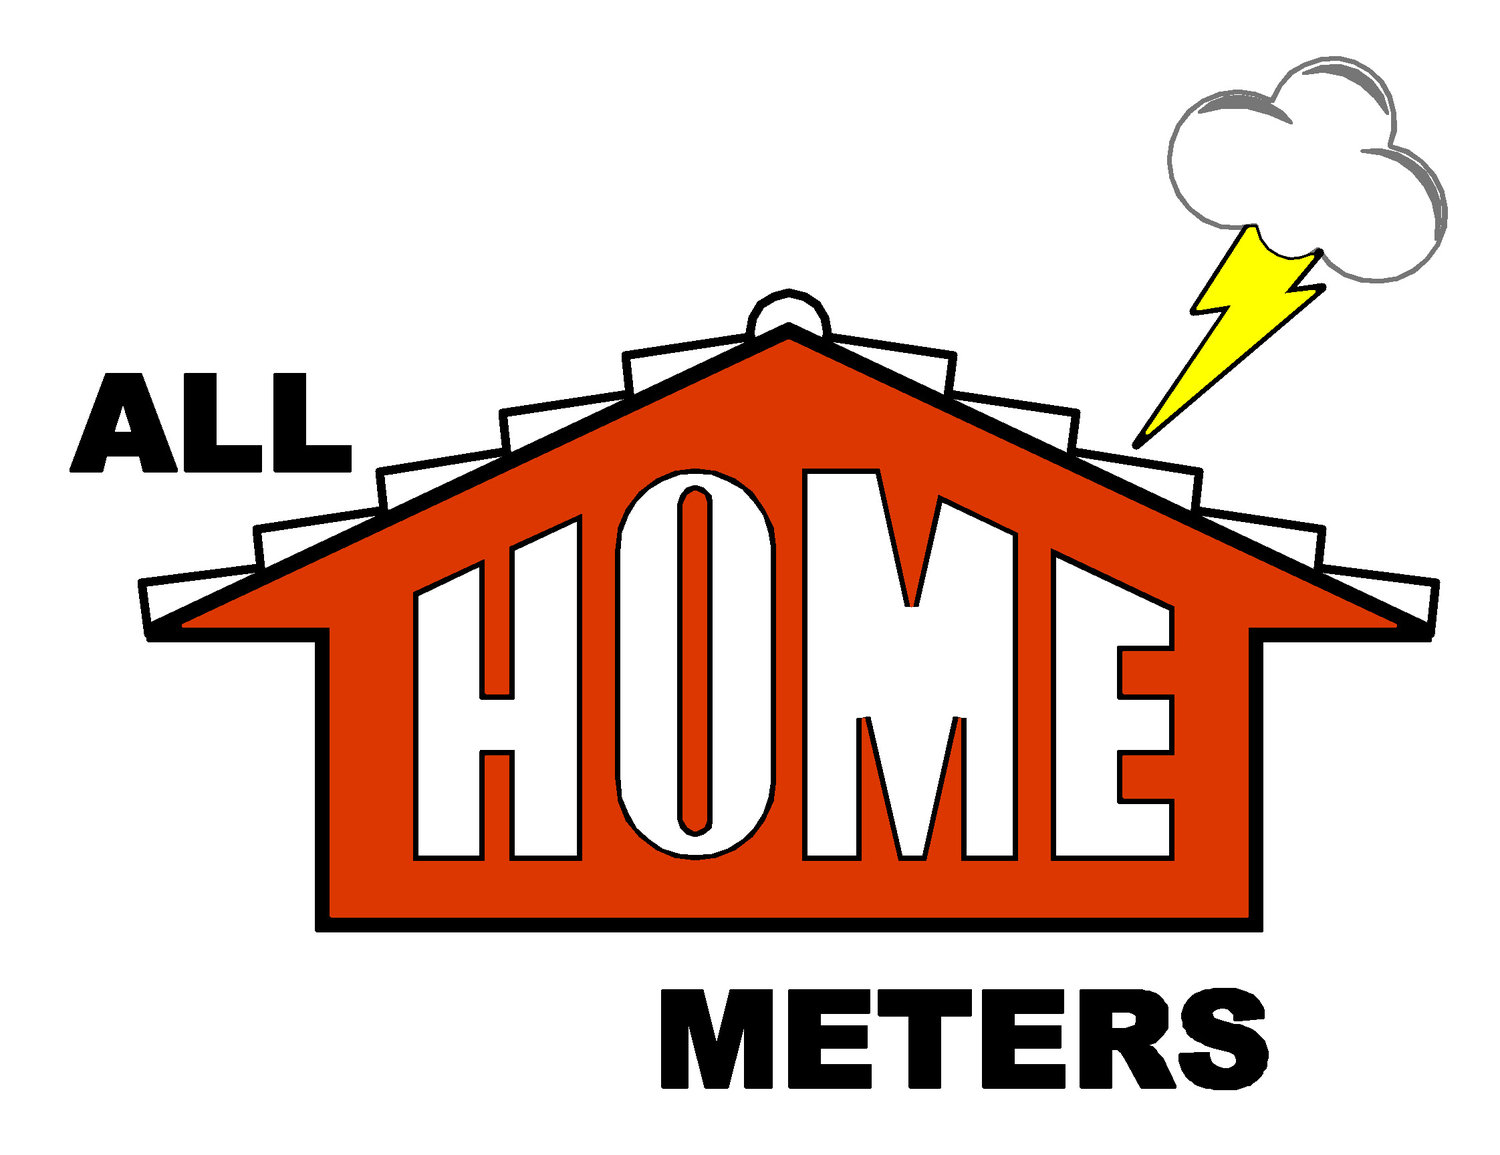 Home Inspection South Florida, Beach, Doral, Miramar, Pembroke Pines, Hollywood, Fort Lauderdale, Weston, Dade, Broward